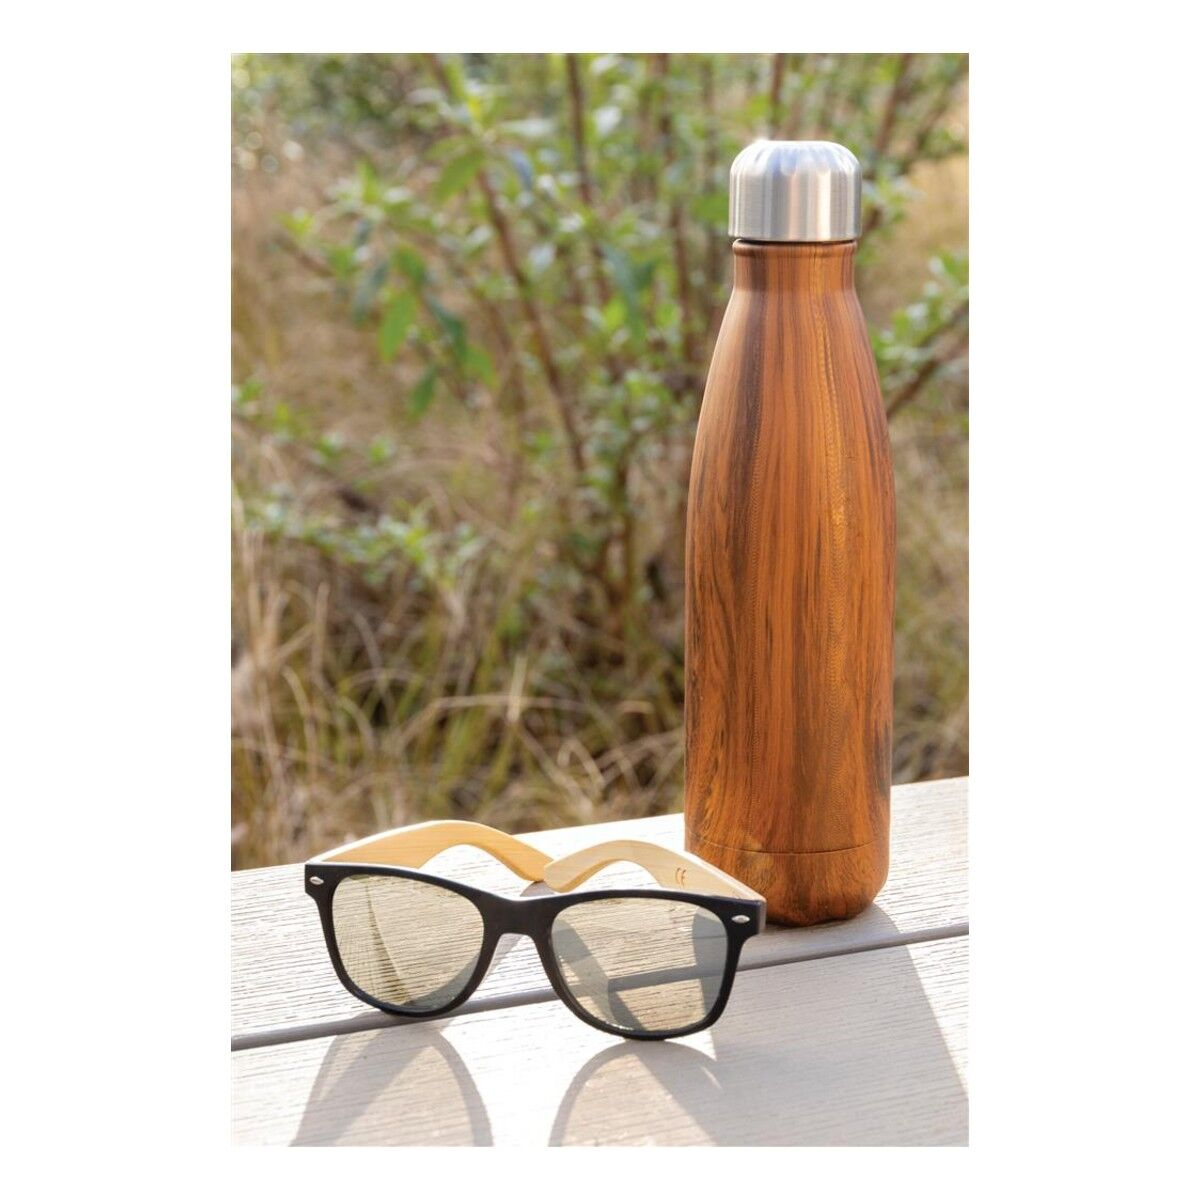 Wooden Effect Insulated Water Bottle